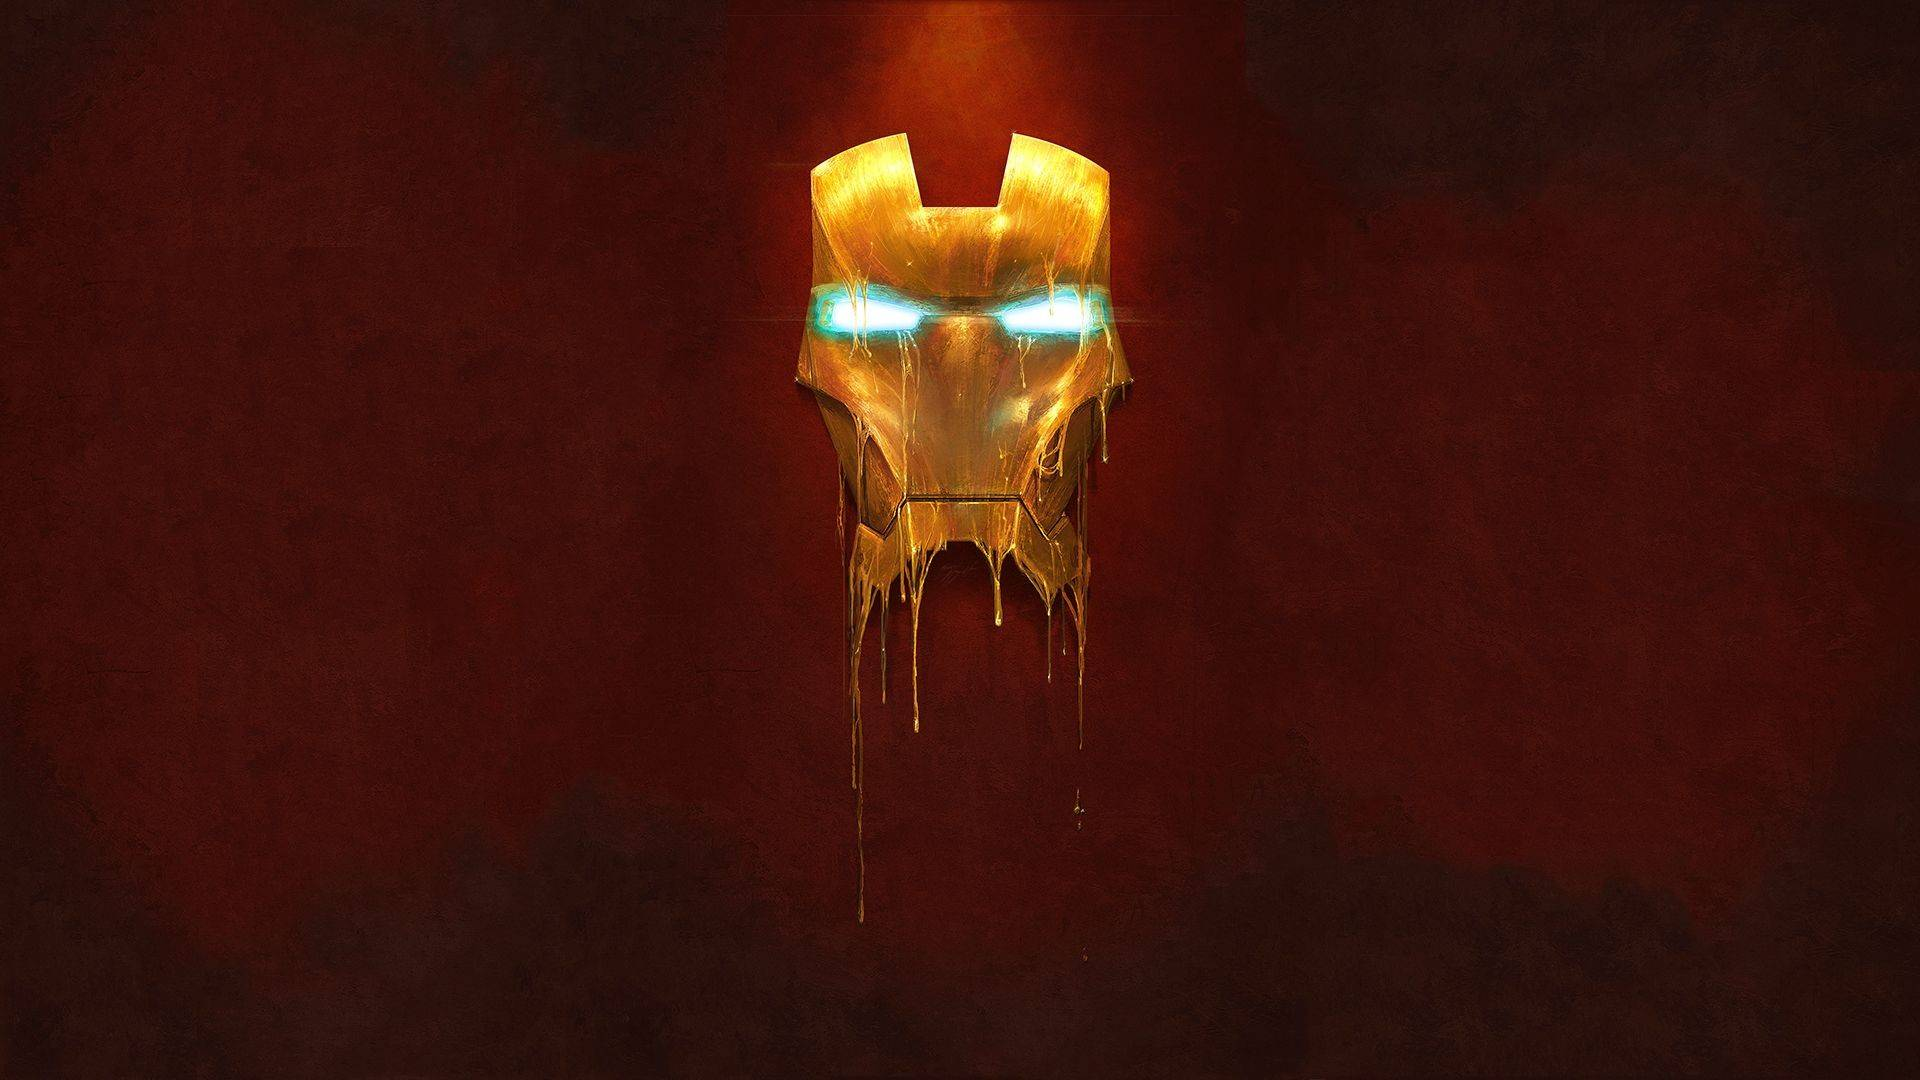 iron man 3 wallpaper 17 | wallpapersbq